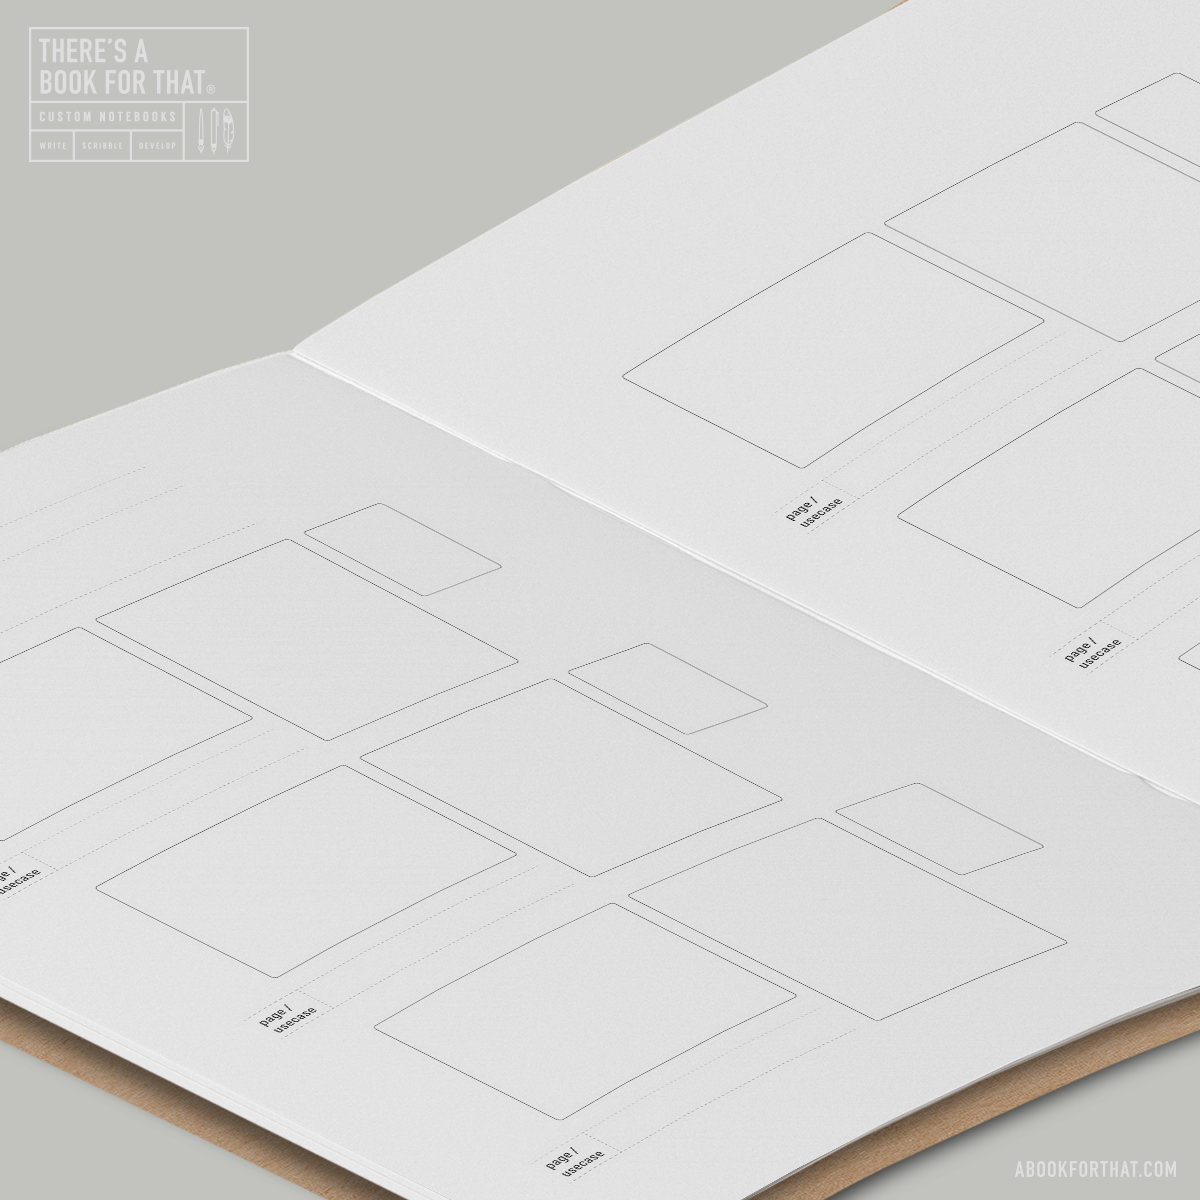 B-114_Screen_Design_Stationery_Notebook_Details2